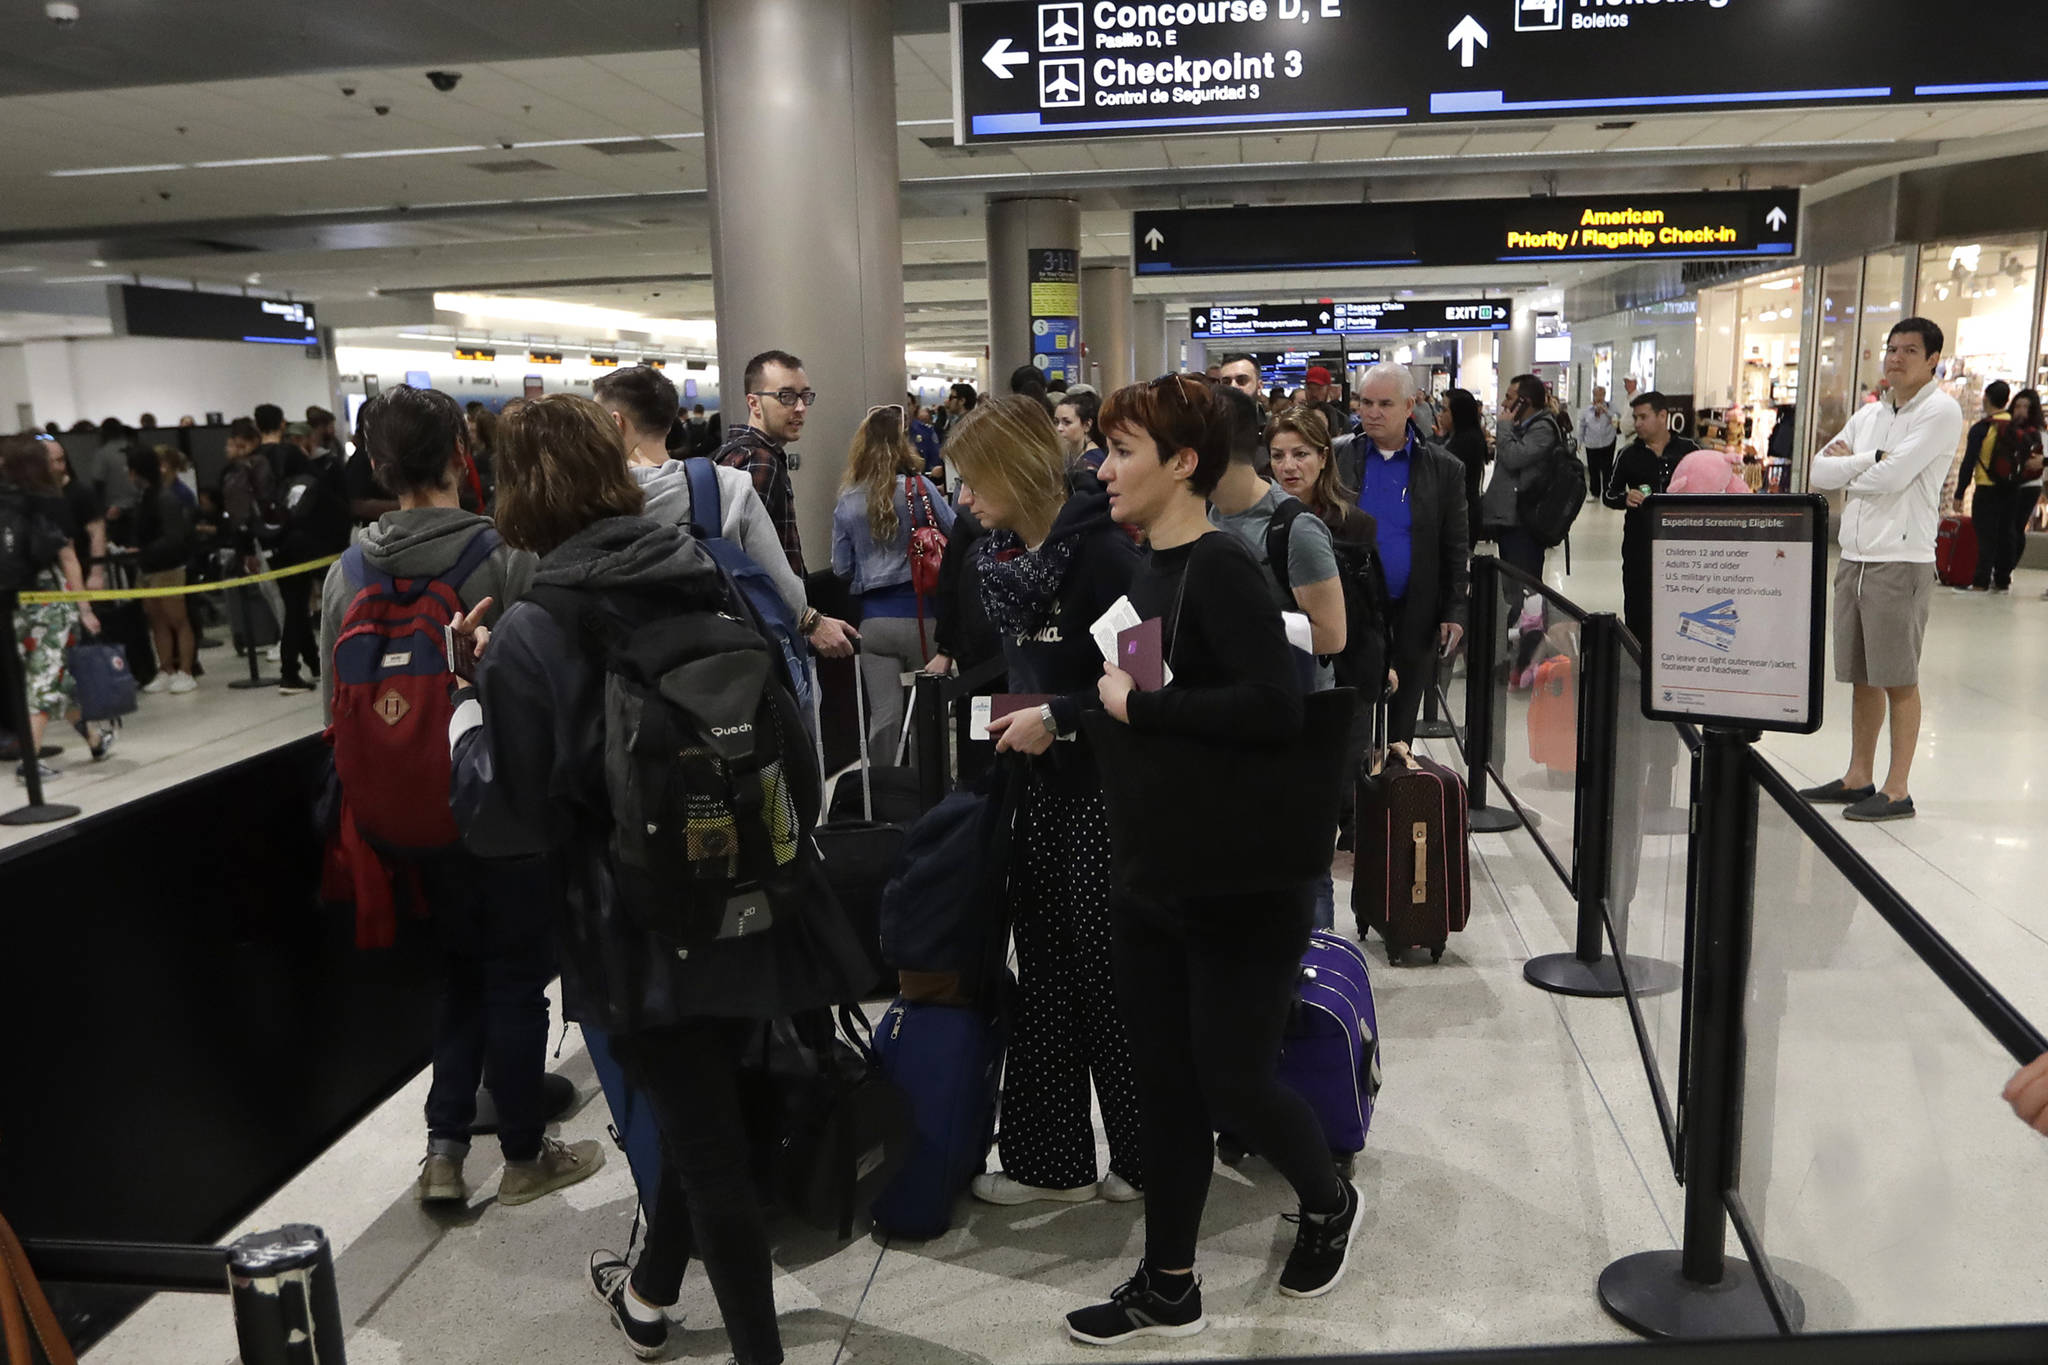 Passengers wait in line at a security checkpoint at Miami International Airport, Friday, Jan. 18, 2019, in Miami. (Lynne Sladky | Associated Press)